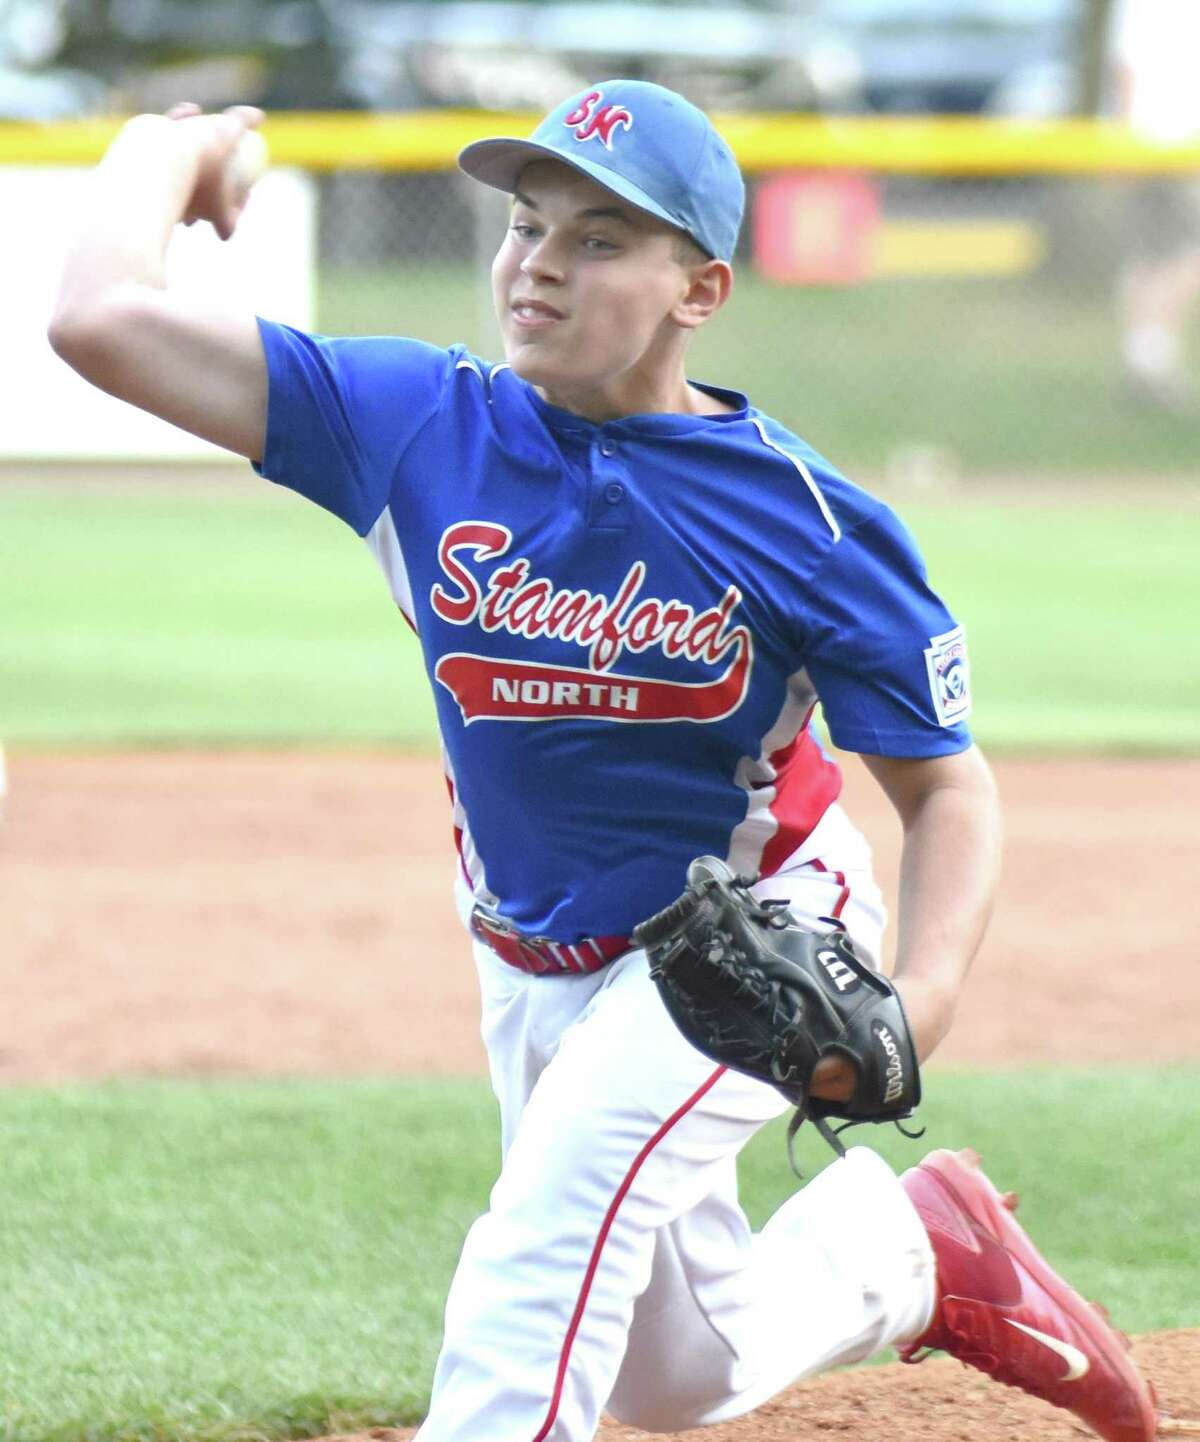 Stamford North pitcher Mike Iorfino fires to the plate during Wednesday's District 1 Little League All-Star playoff game at Bill Terry Field in Wilton. Iorfino fired a perfect game, retiring all 18 batters he faced as Stamford North defeated Wilton 5-0.